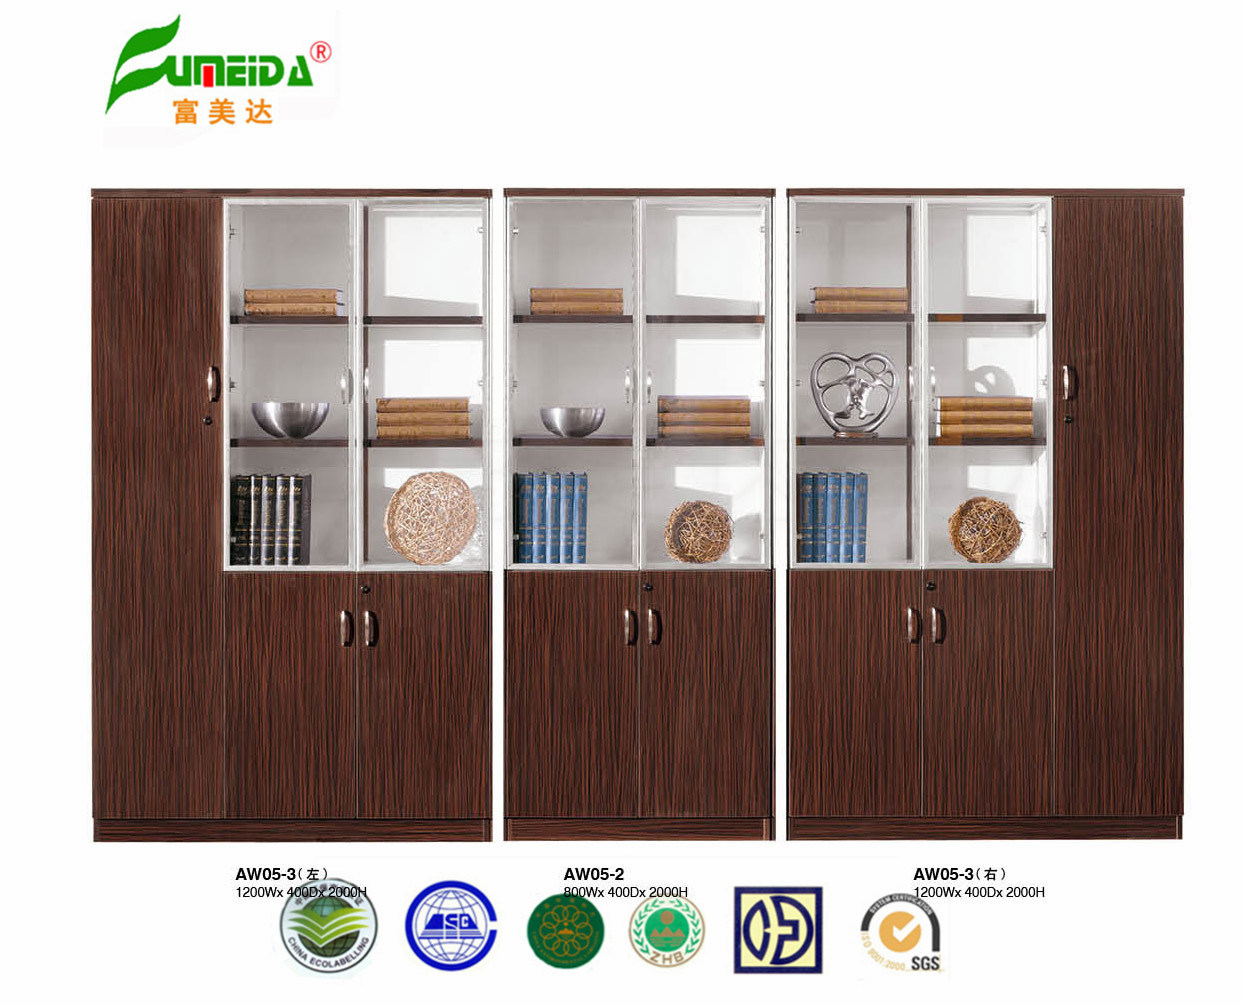 China MFC Luxury High End File Cabinet   China File Cabinet, Office Cabinet